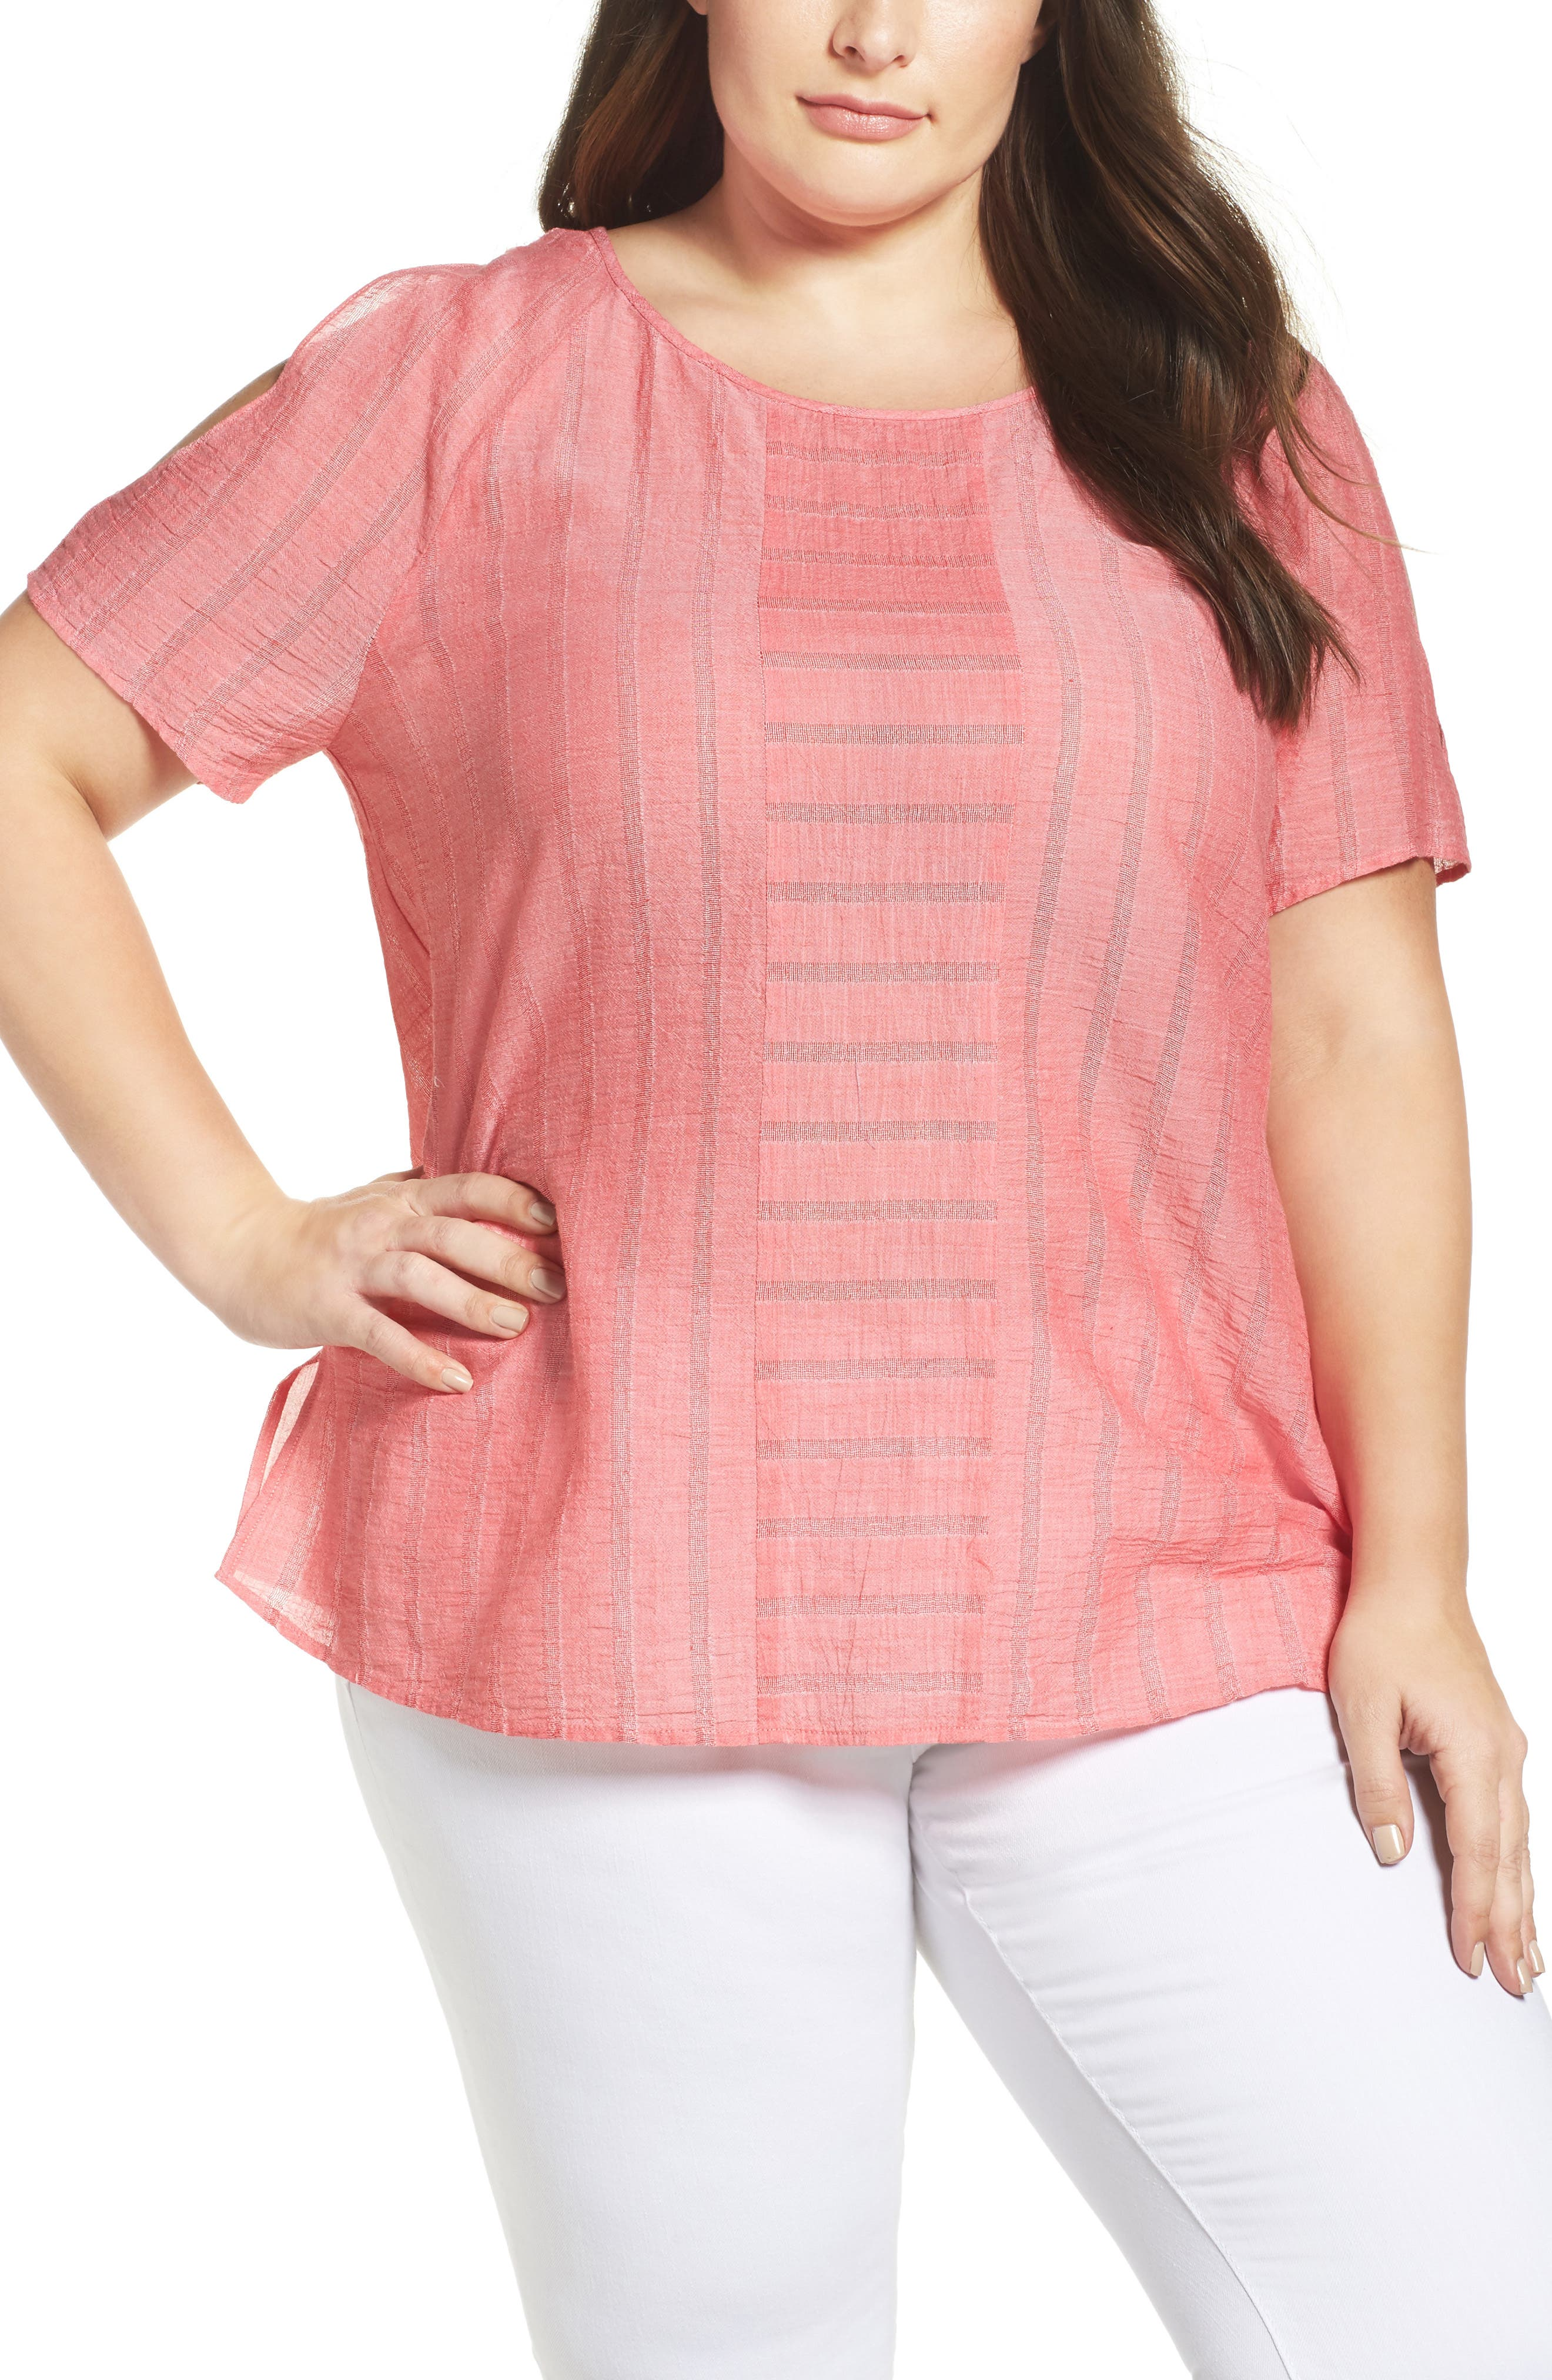 Main Image - Two by Vince Camuto Stripe Gauze Cold Shoulder Top (Plus Size)